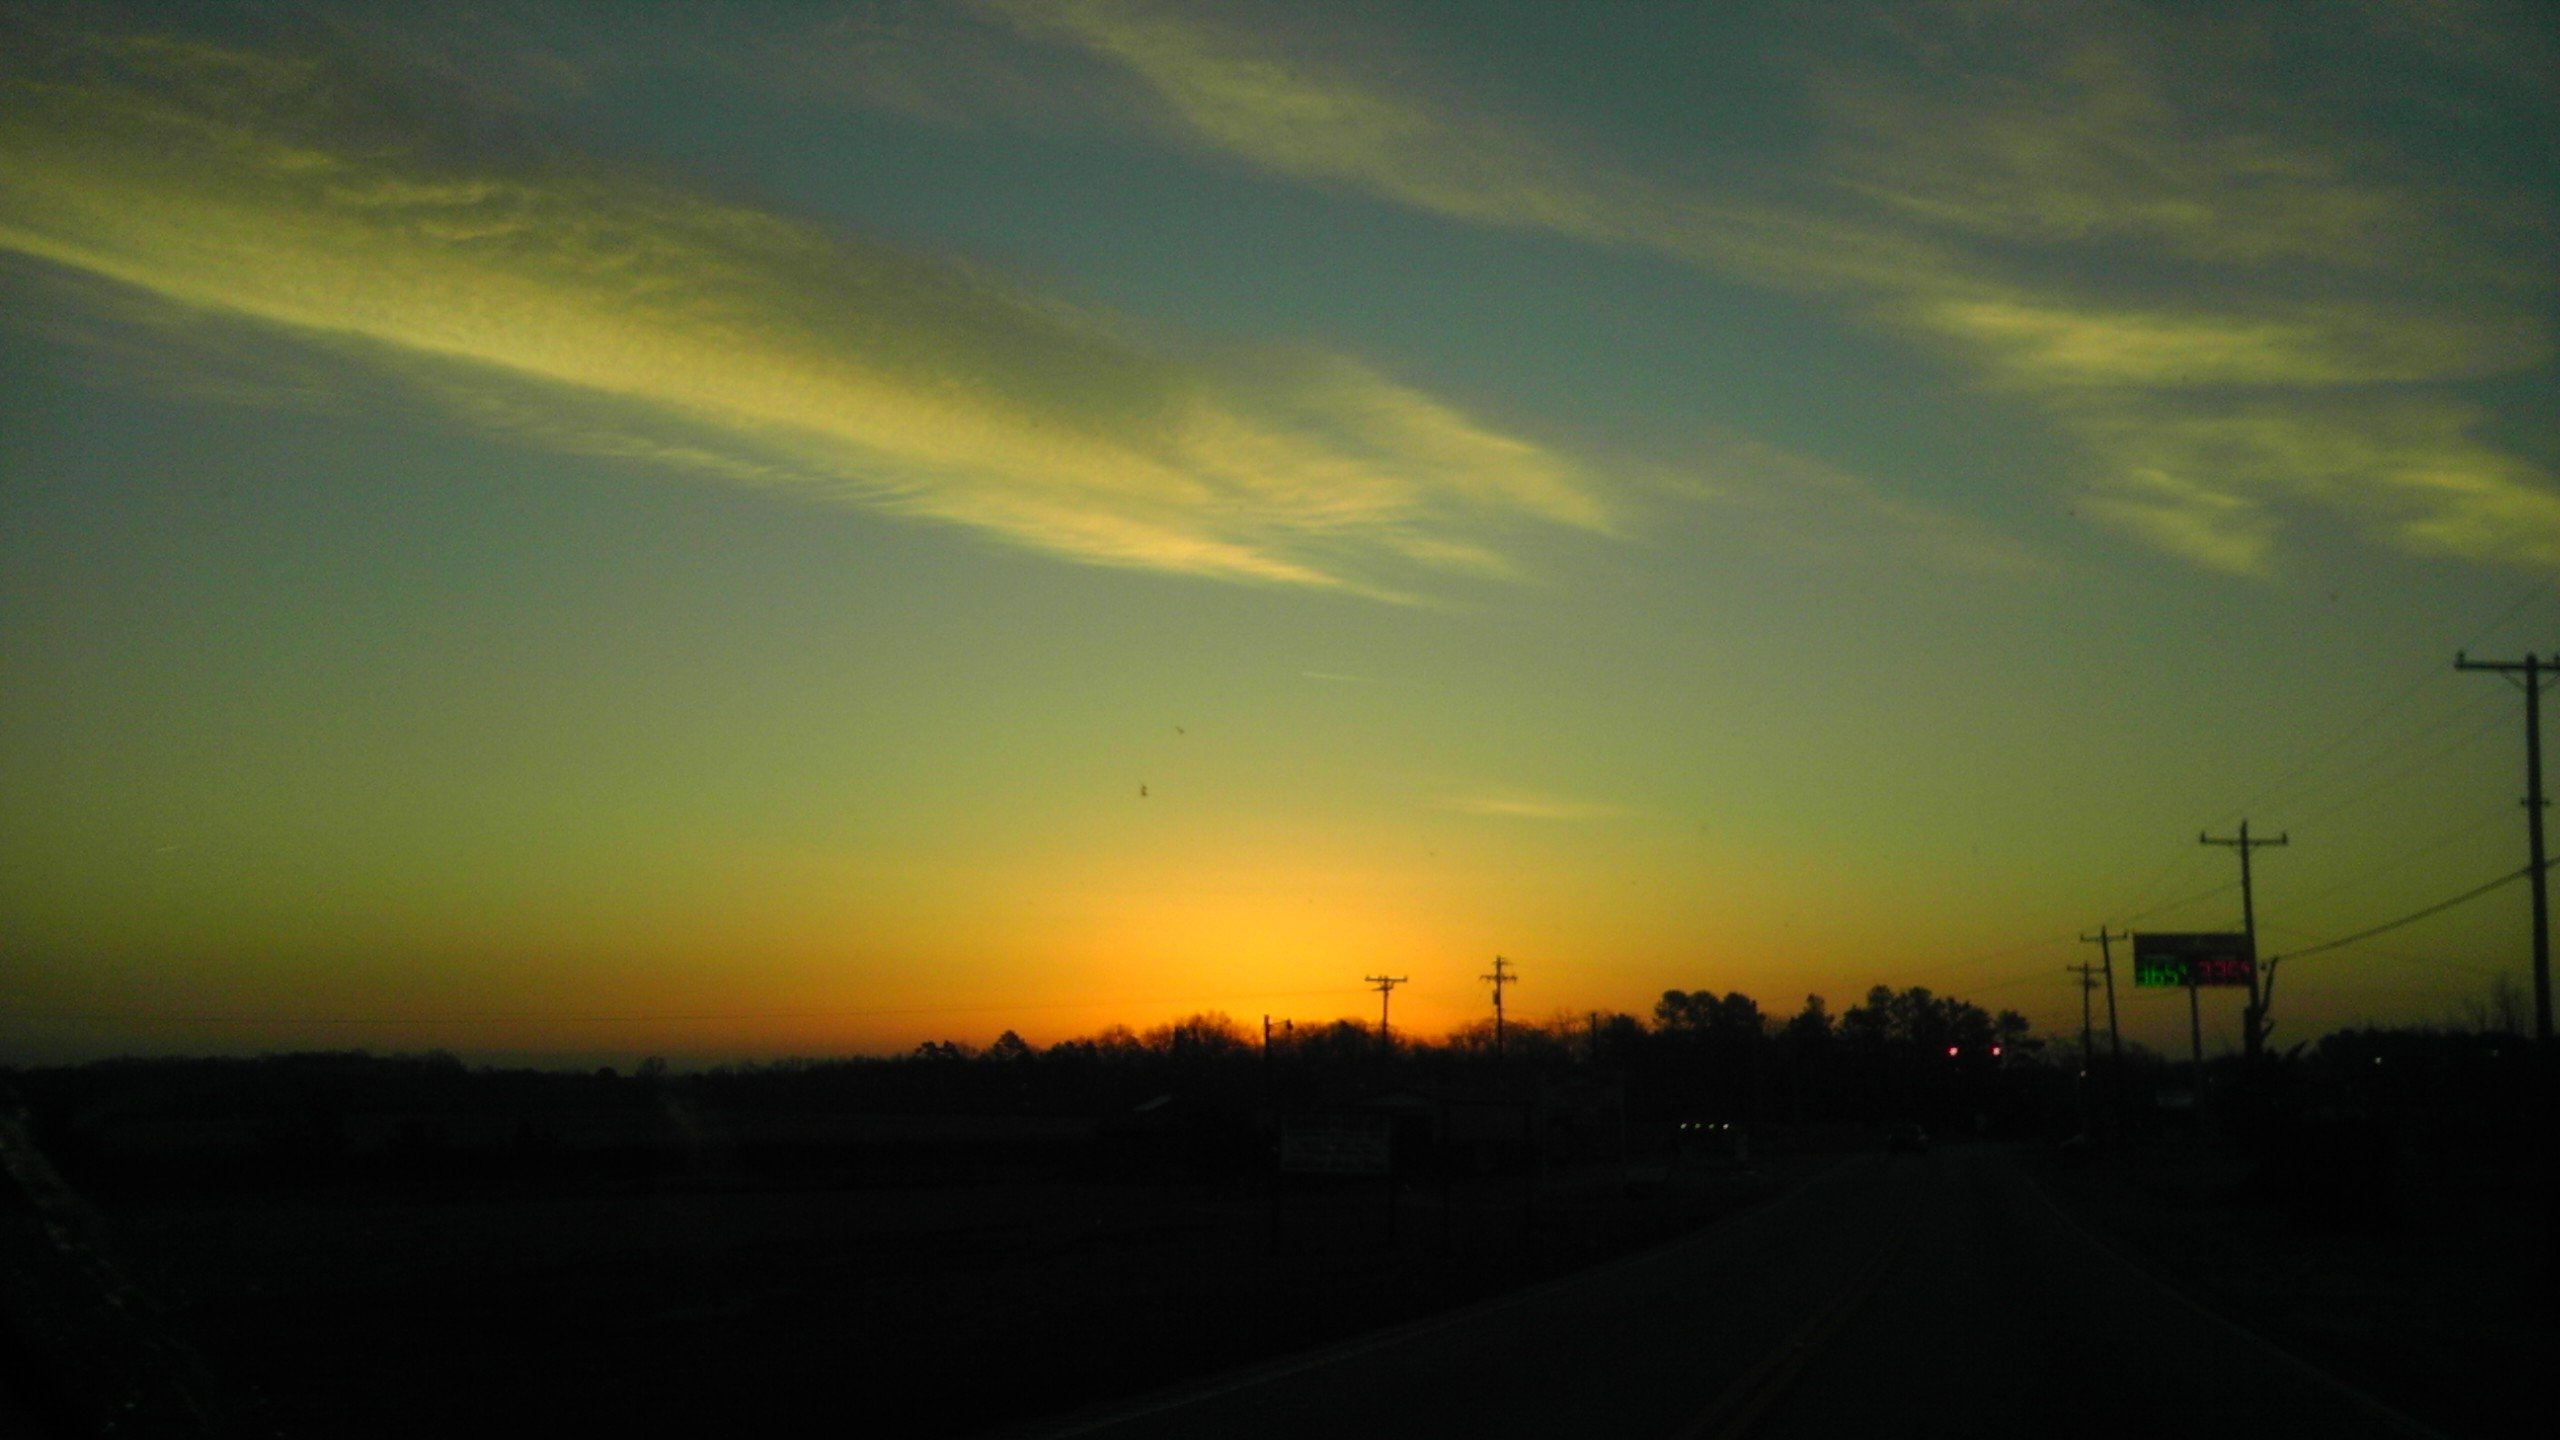 Sunrise this morning from Osman Perkins